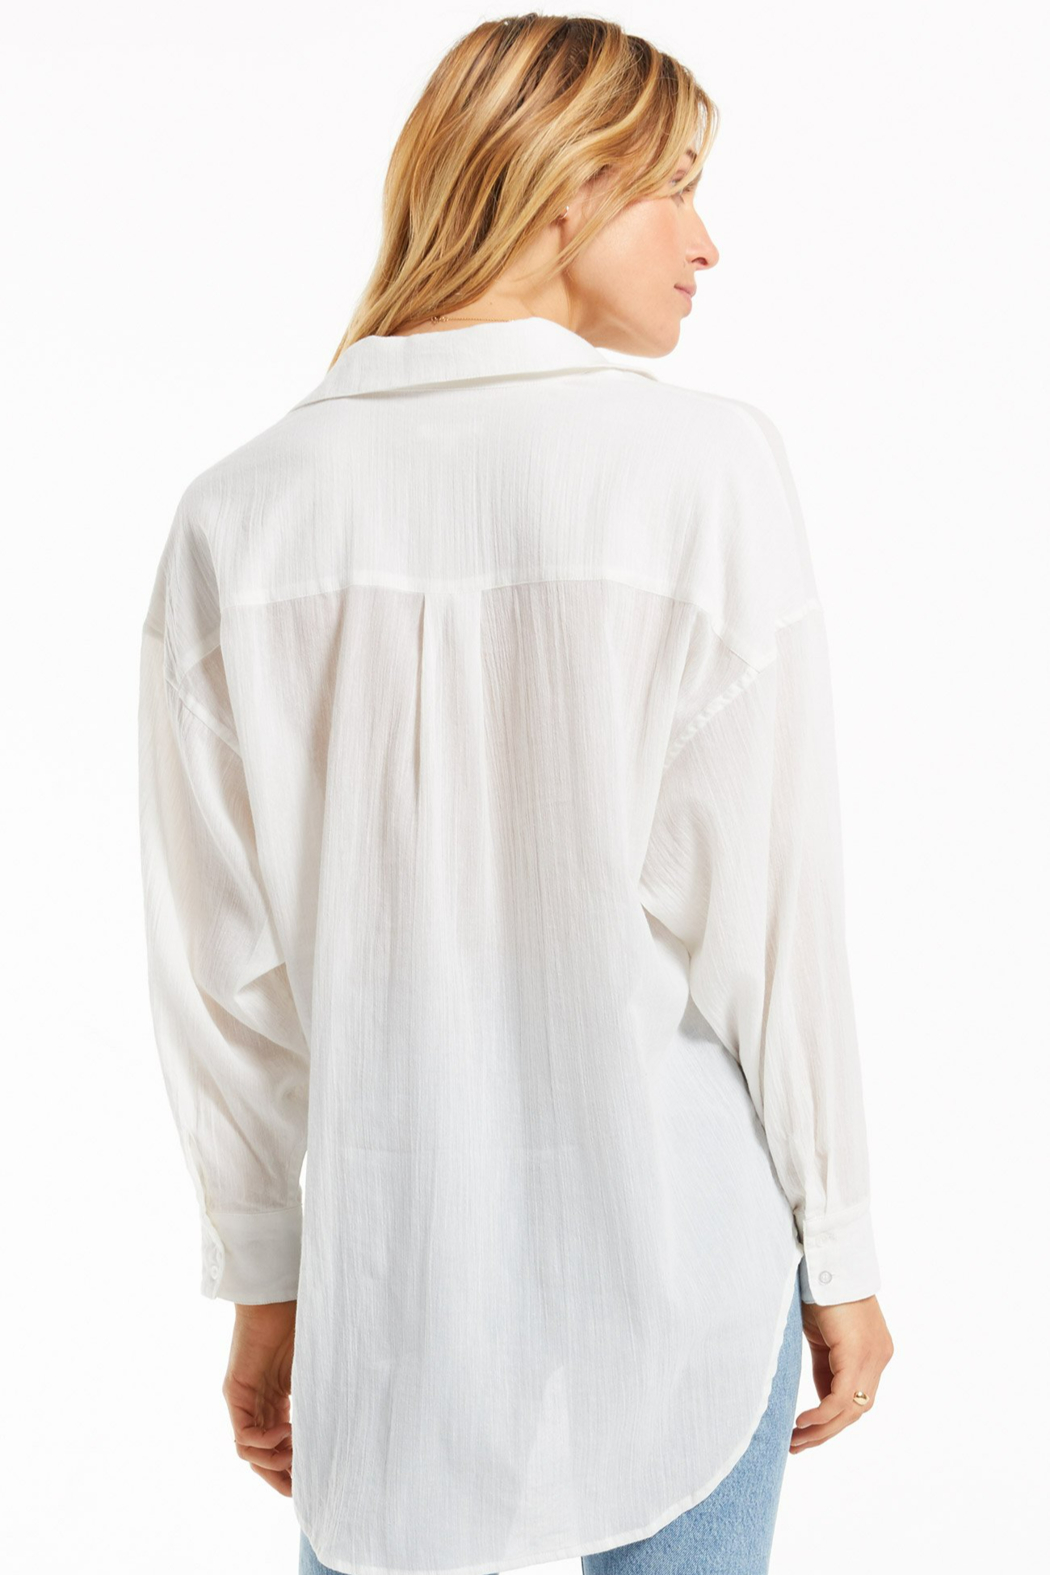 z supply Lalo Button Up Top - Back Cropped Image